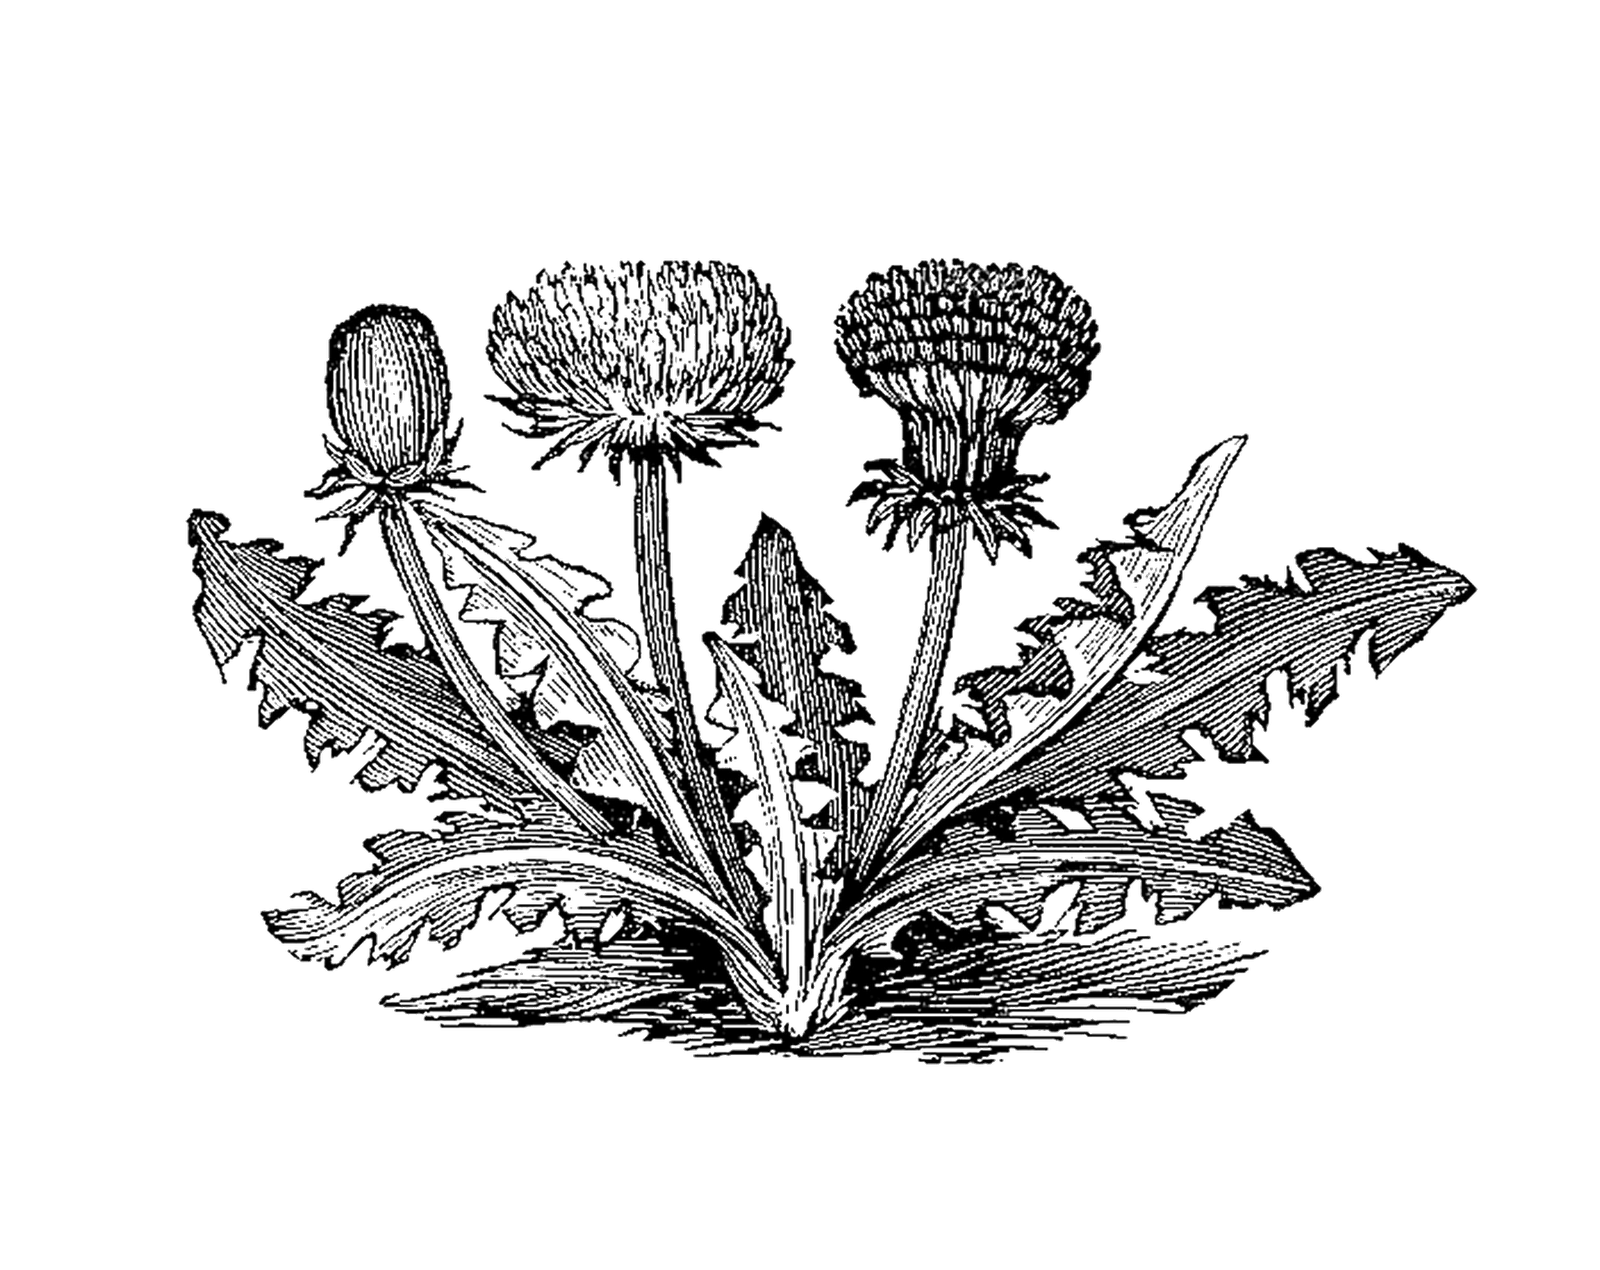 Botanical illustration black and white - photo#2